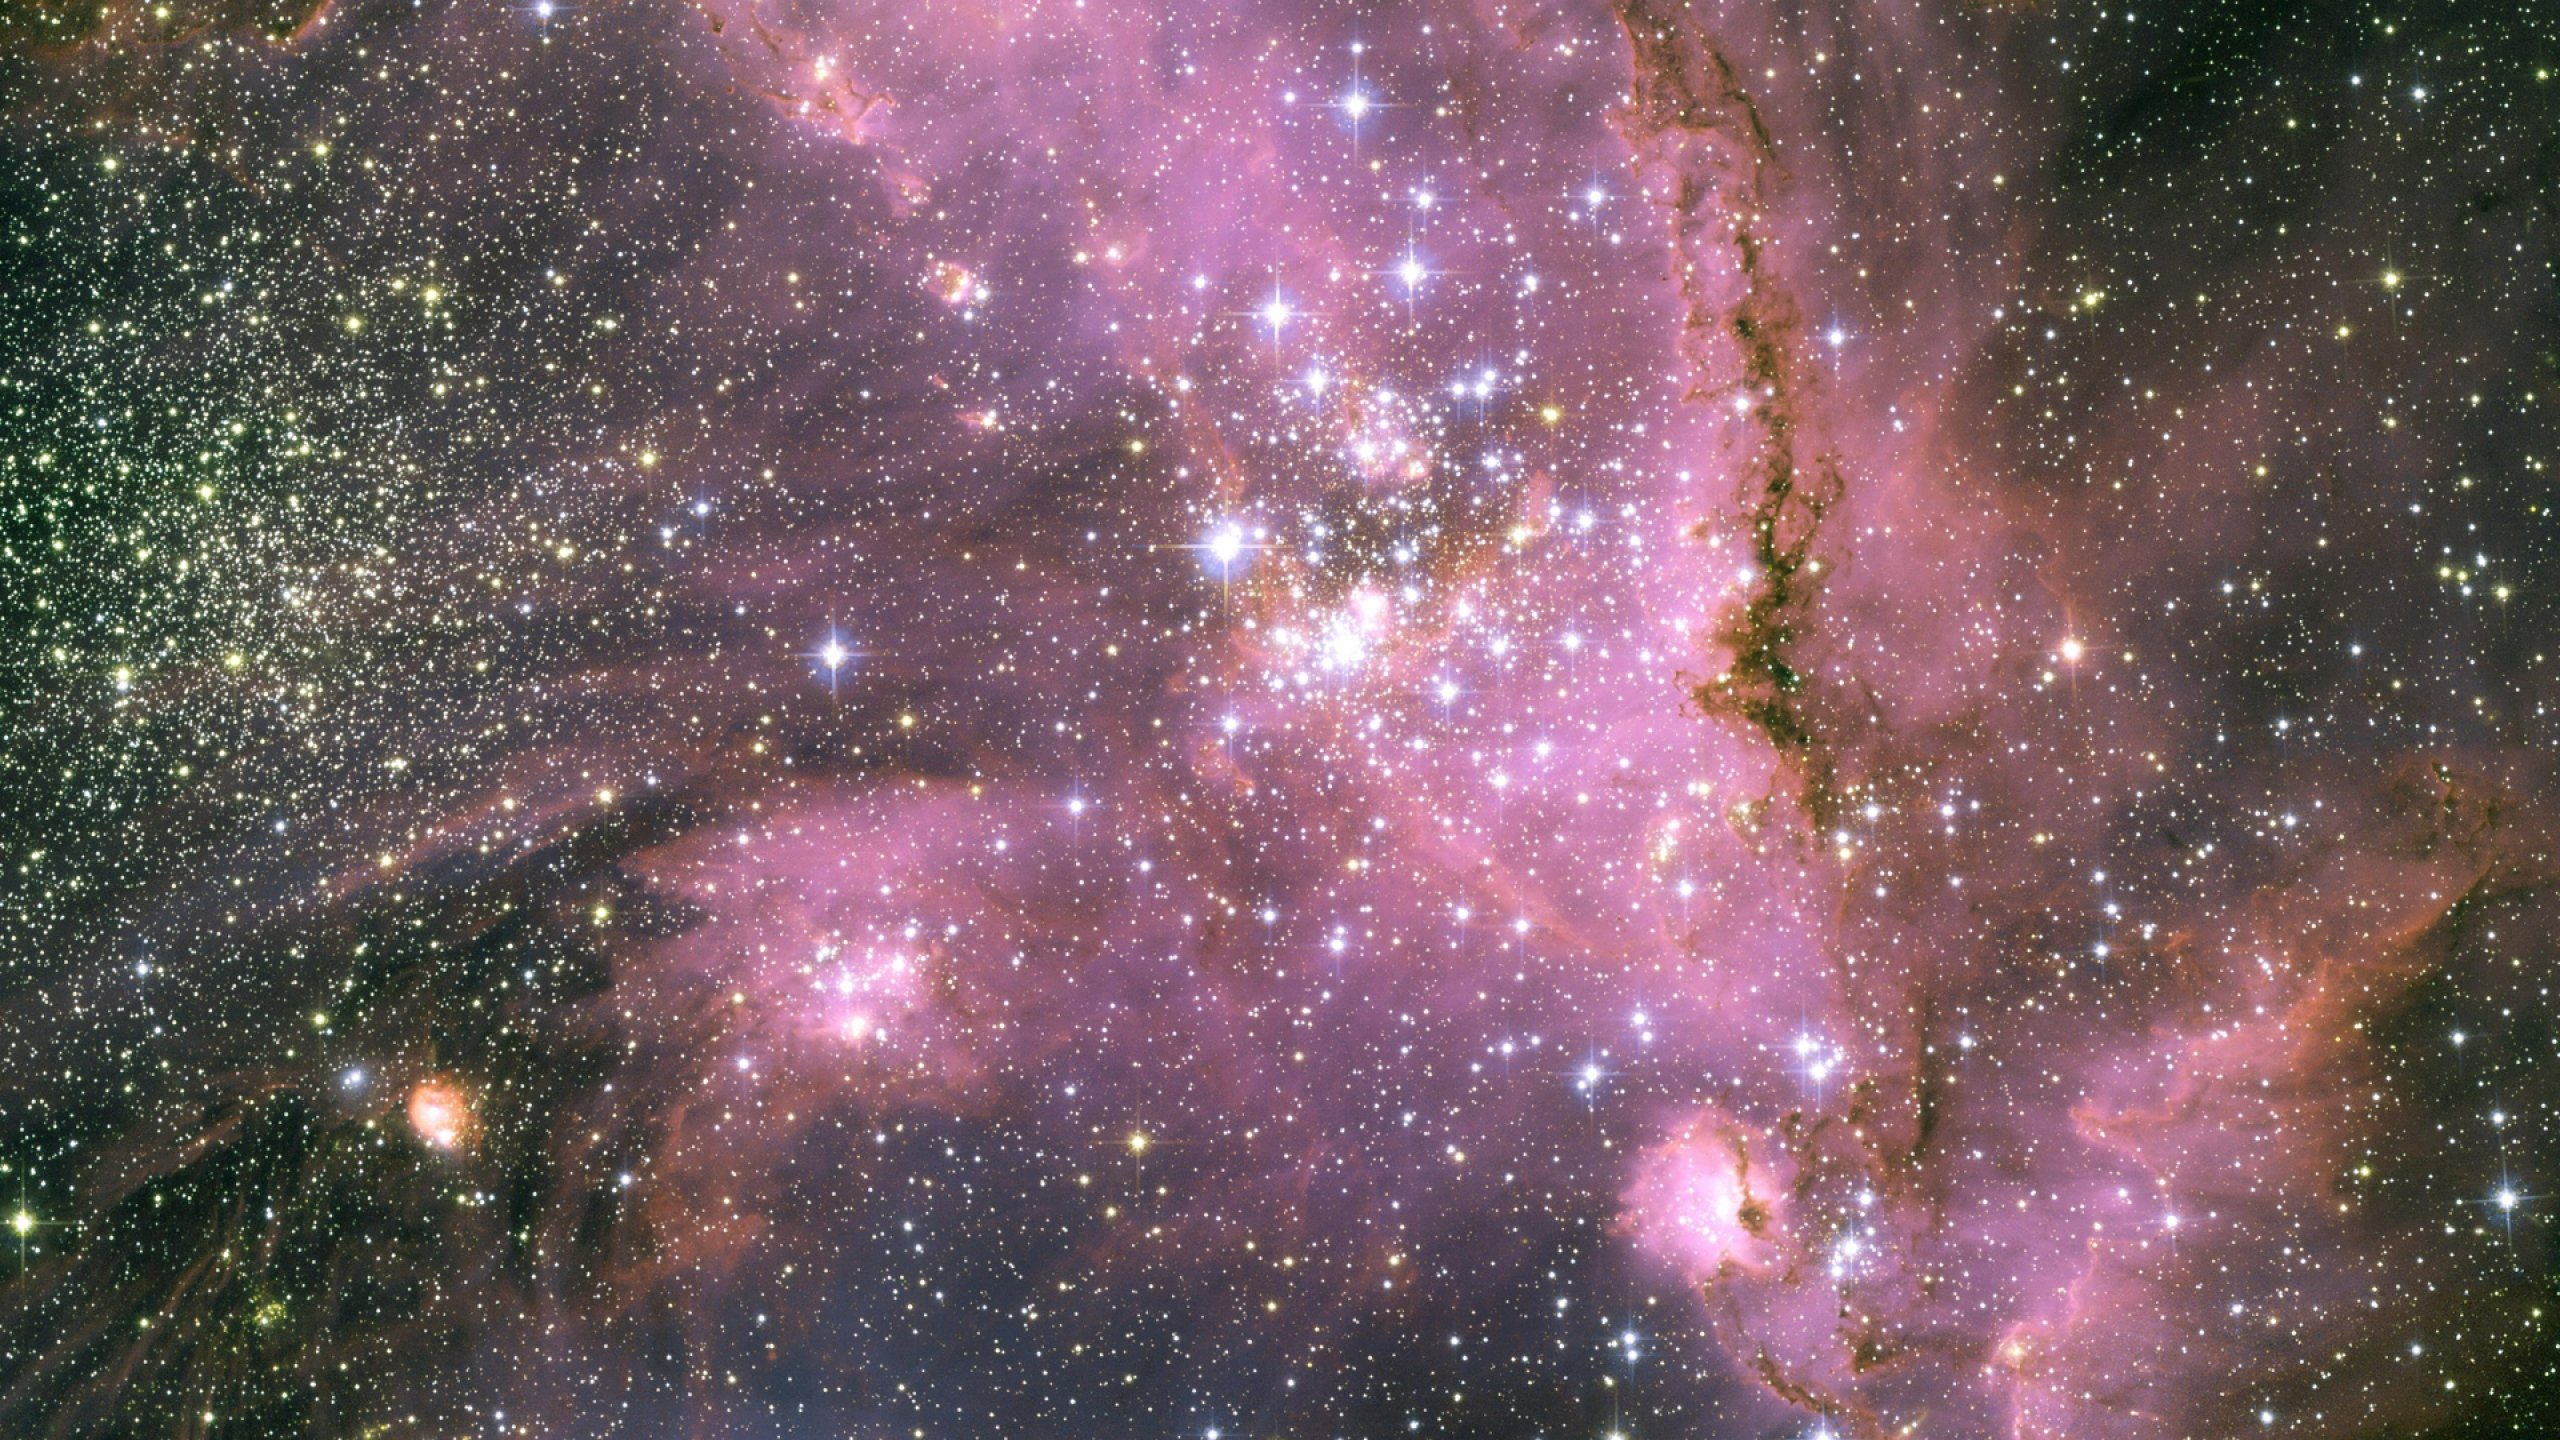 Download Wallpaper 2560x1440 Stars Pink Light Galaxy Mac iMac 27 HD 2560x1440